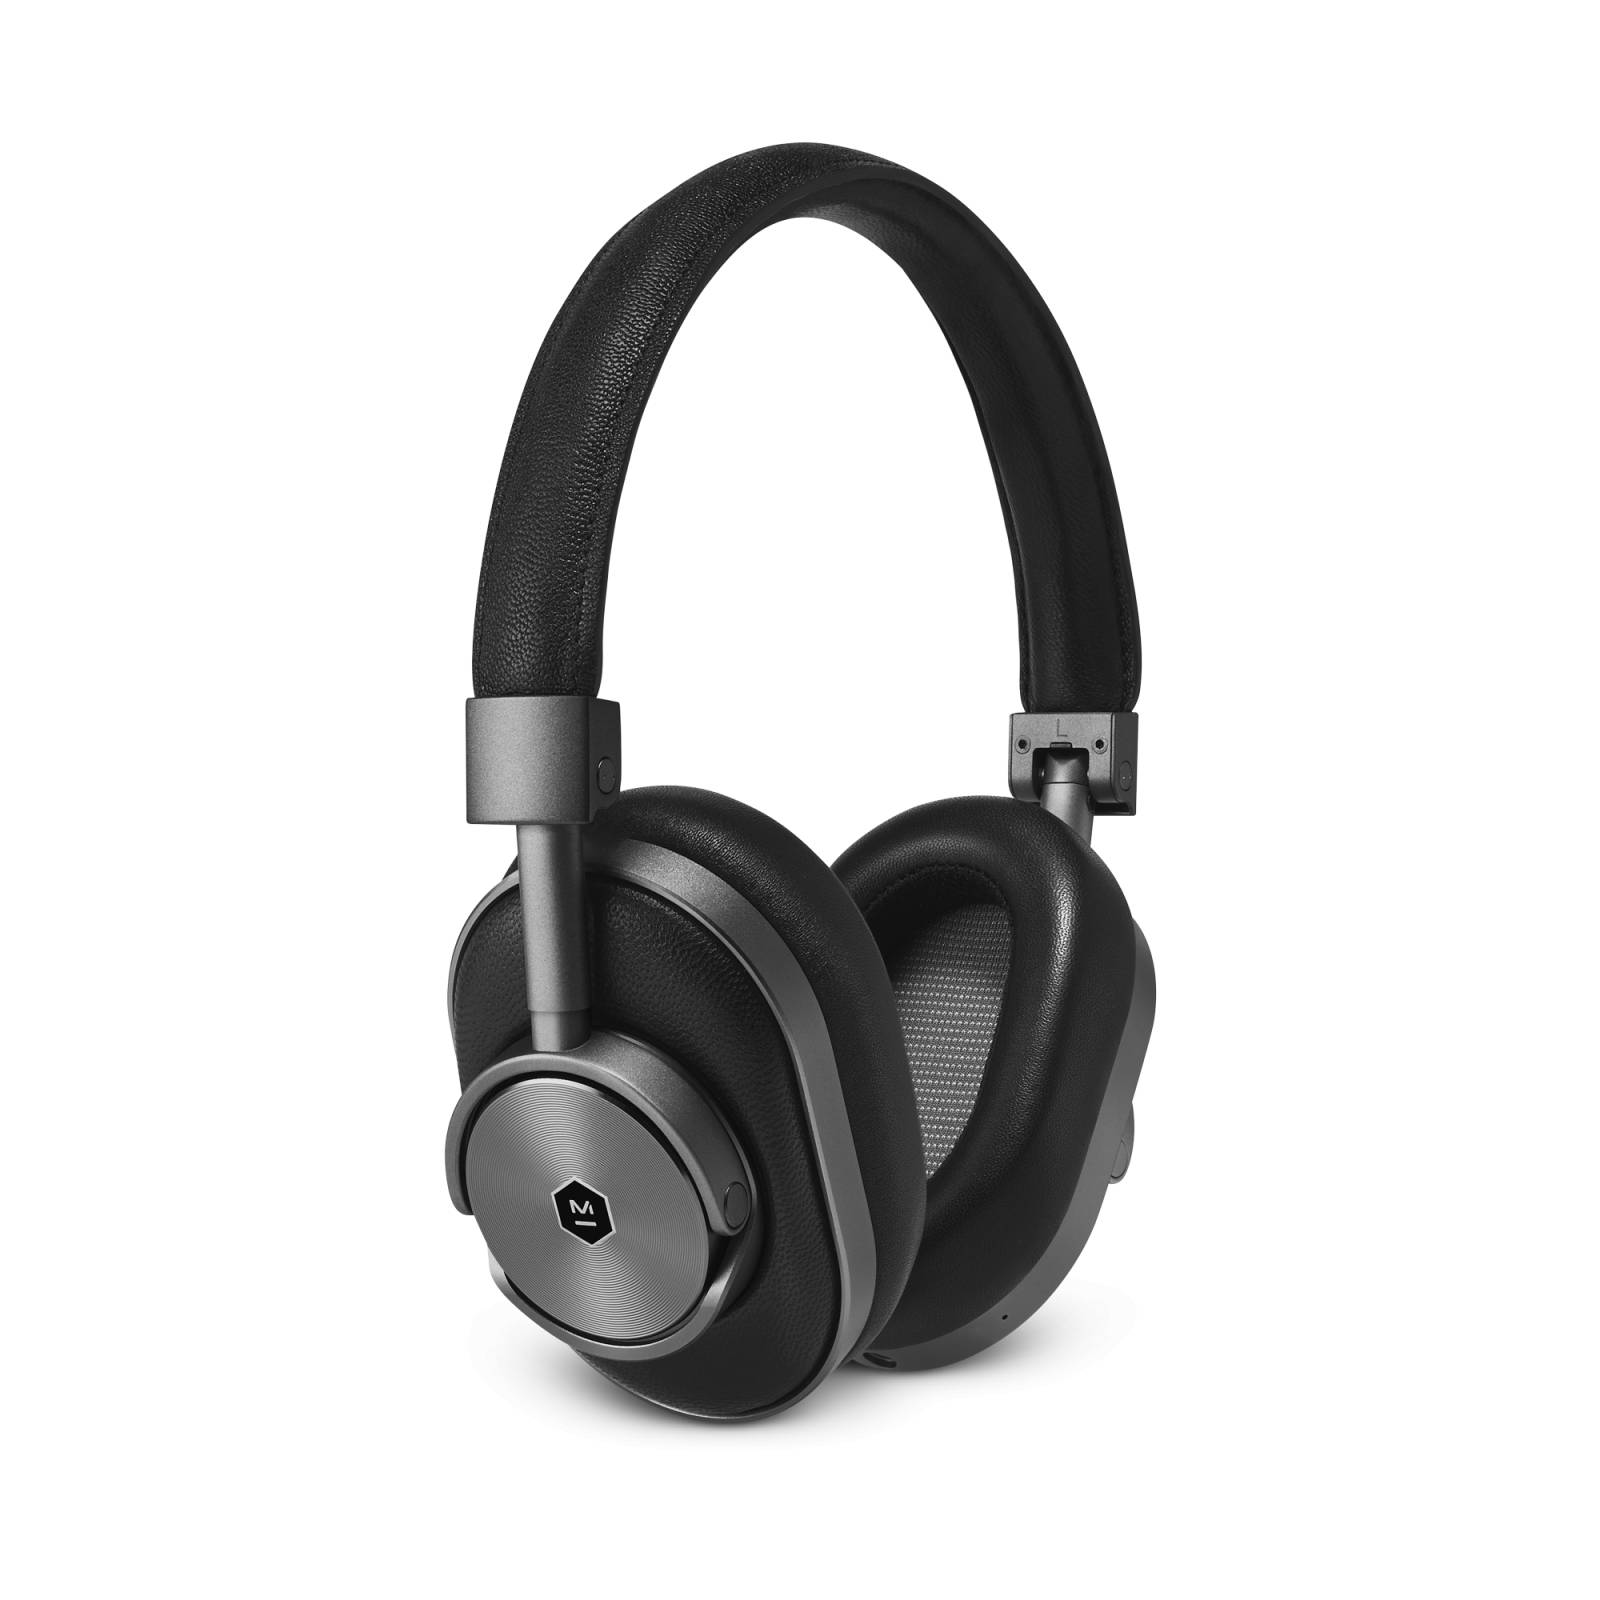 MW60 Wireless Over-Ear Headphones, Gunmetal